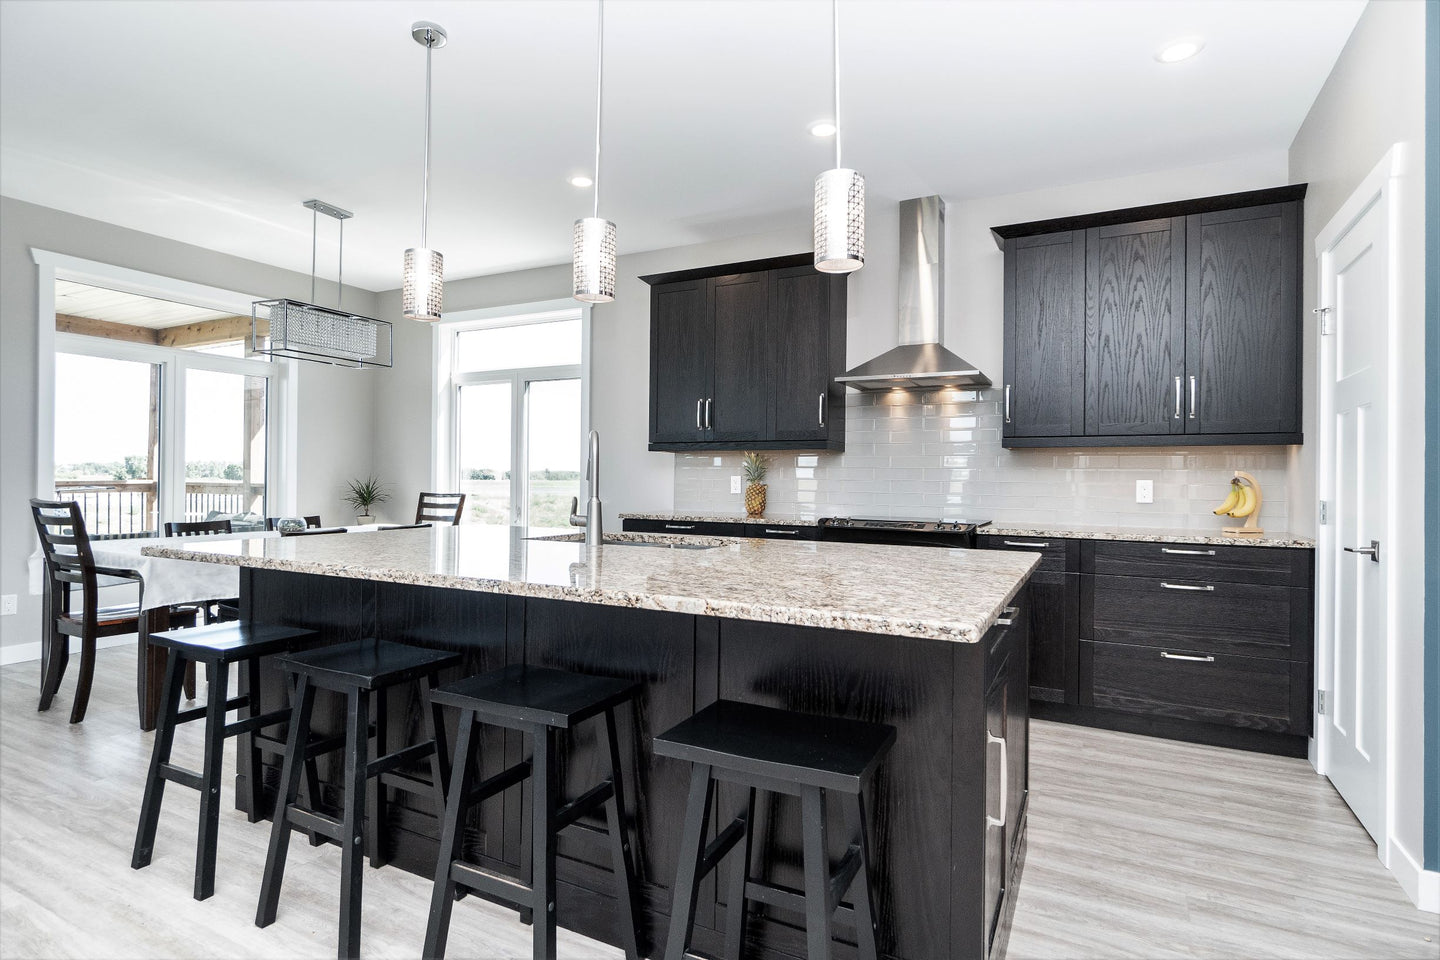 crisp, clean kitchen in custom built house in St. Adolphe Manitoba